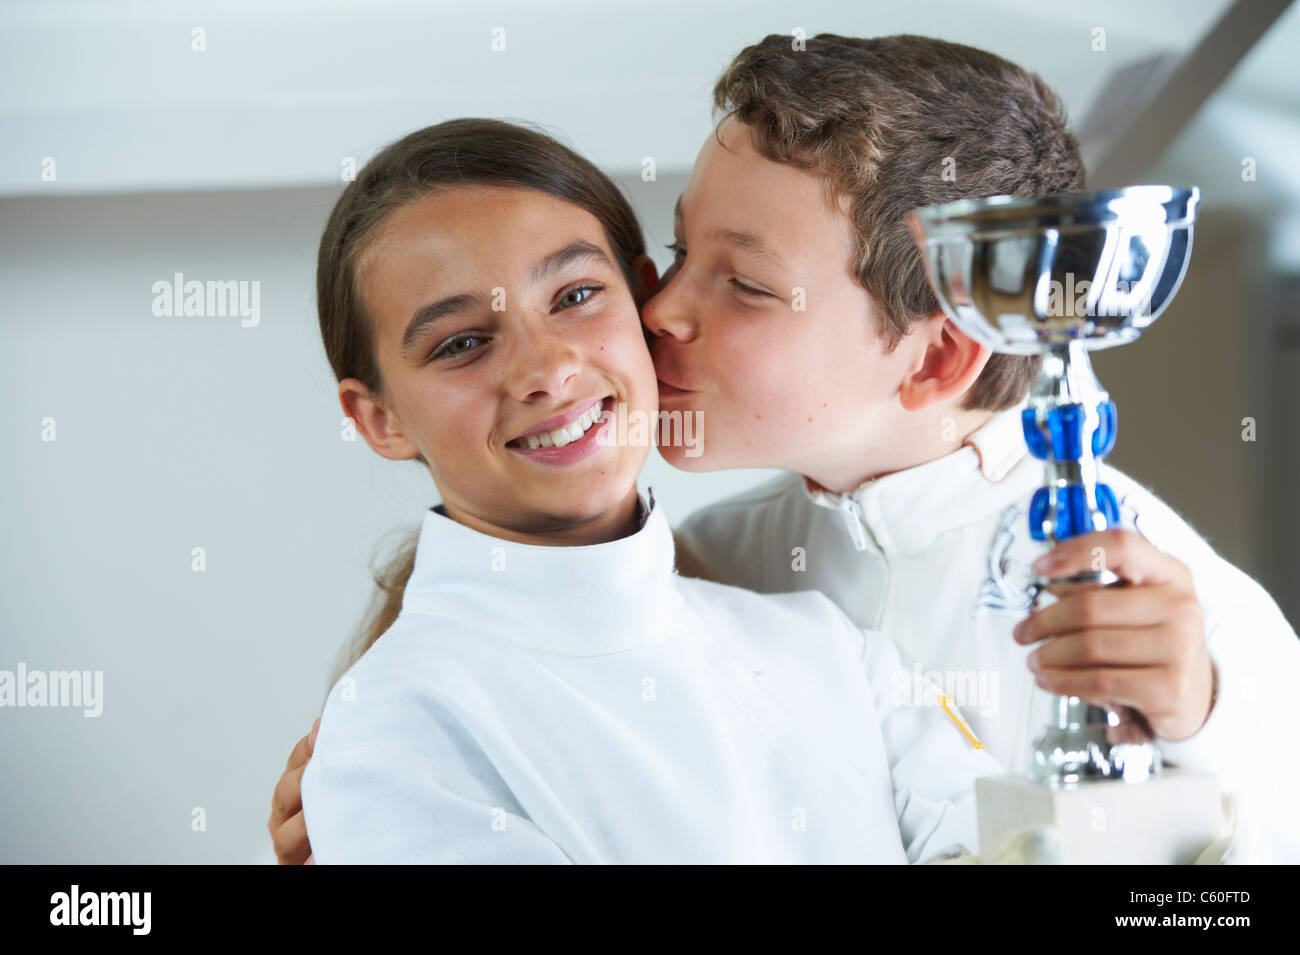 Boy kissing smiling fencing rival - Stock Image